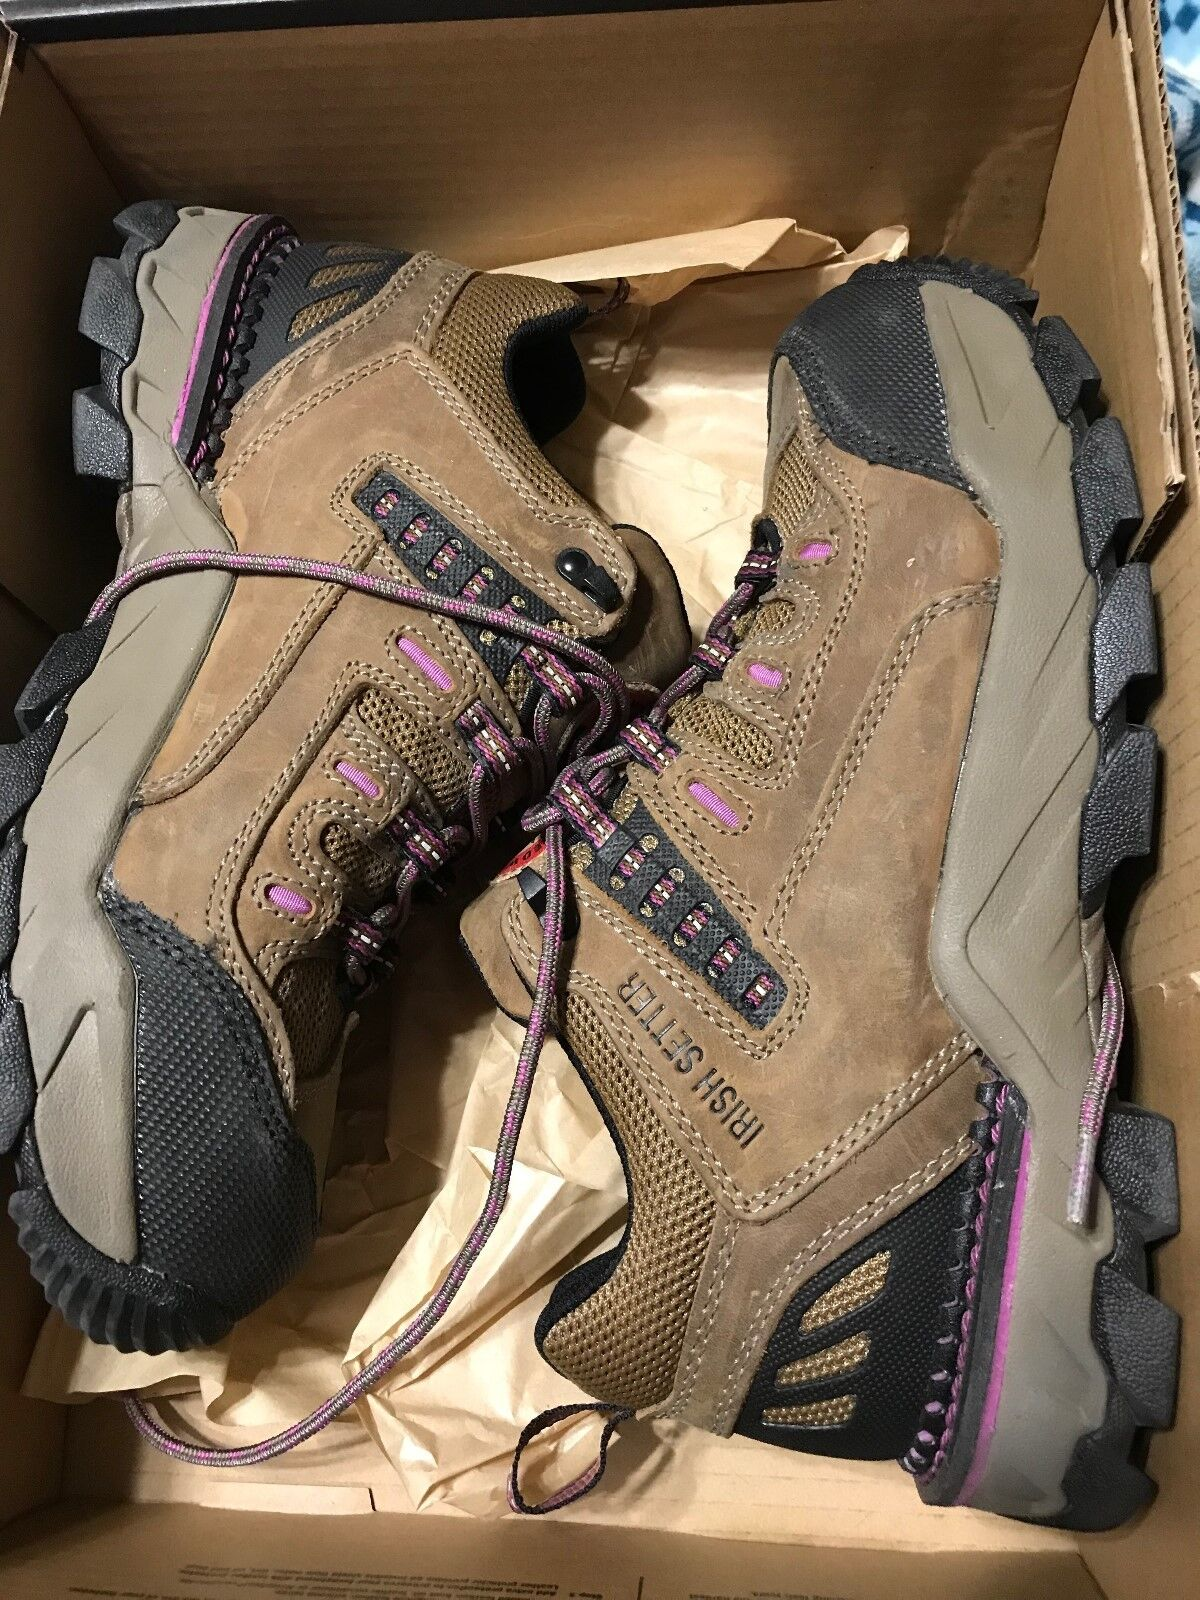 Red wing shoes shoes shoes 9.5 Ladies Brown with Purple on the shoe and laces, Aluminum Toe f566d0